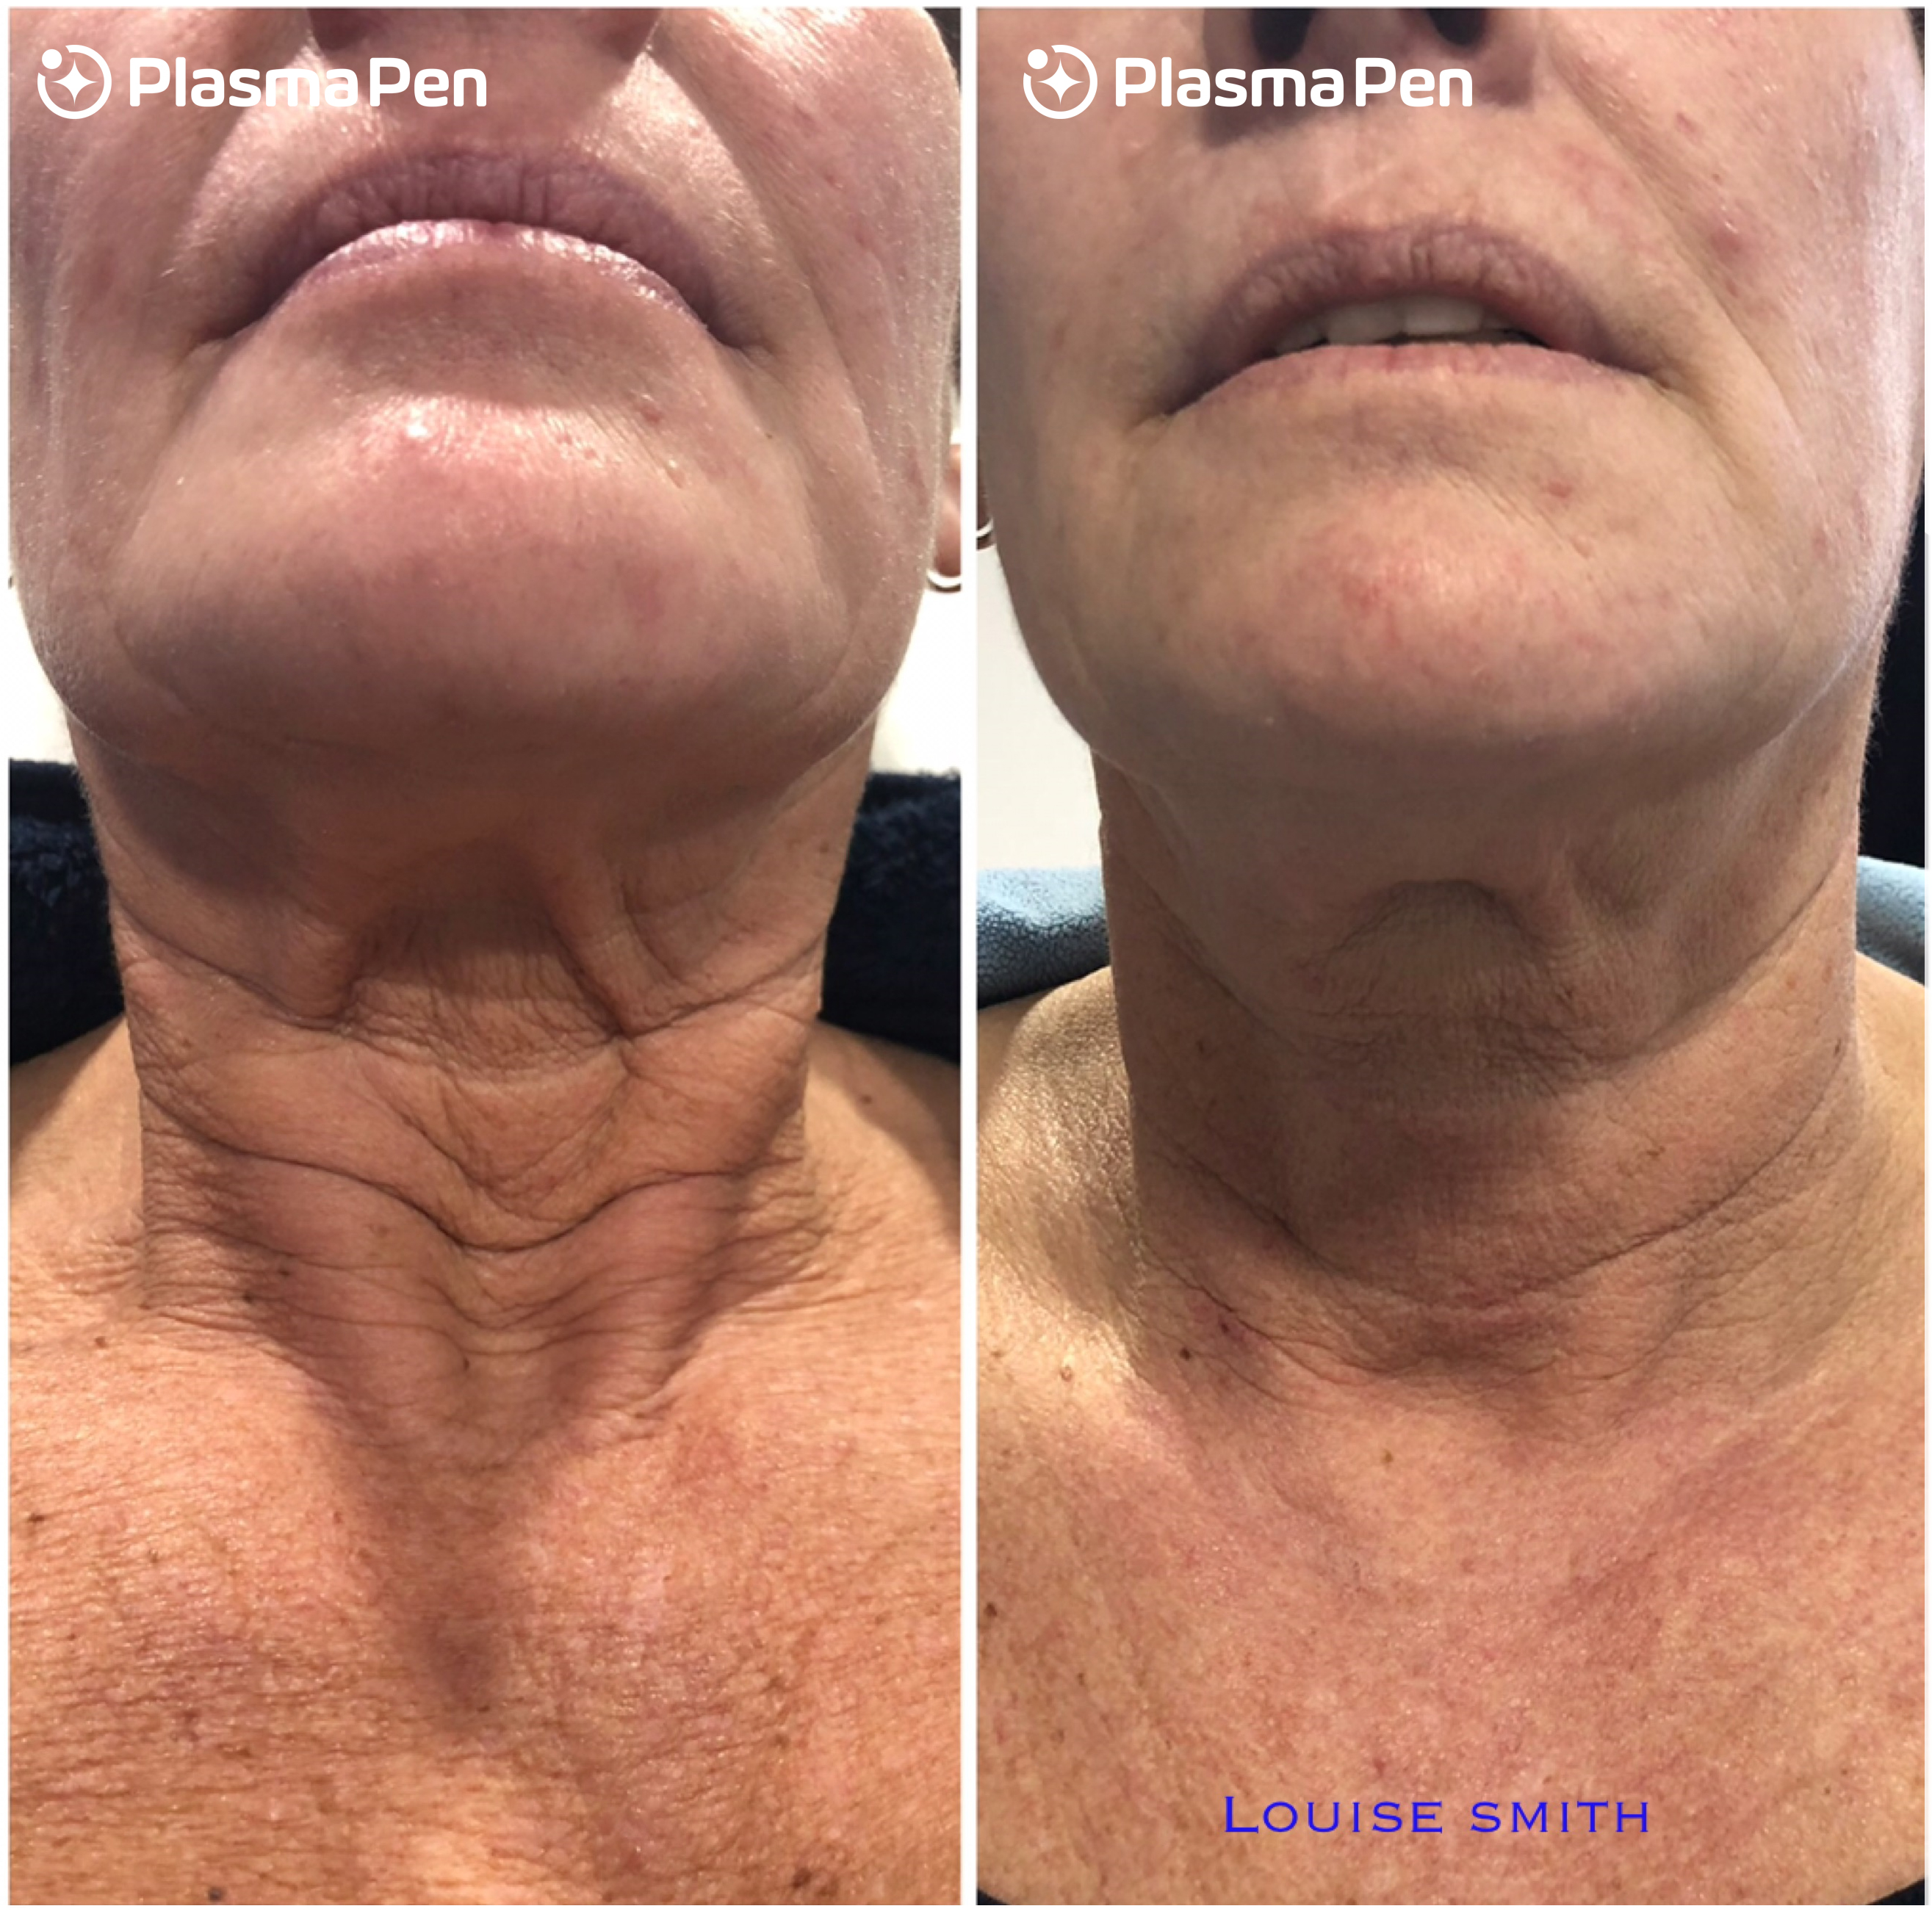 Plasma-Pen-Treatment-Before-and-After-Neck-Lift-Full-Size-04